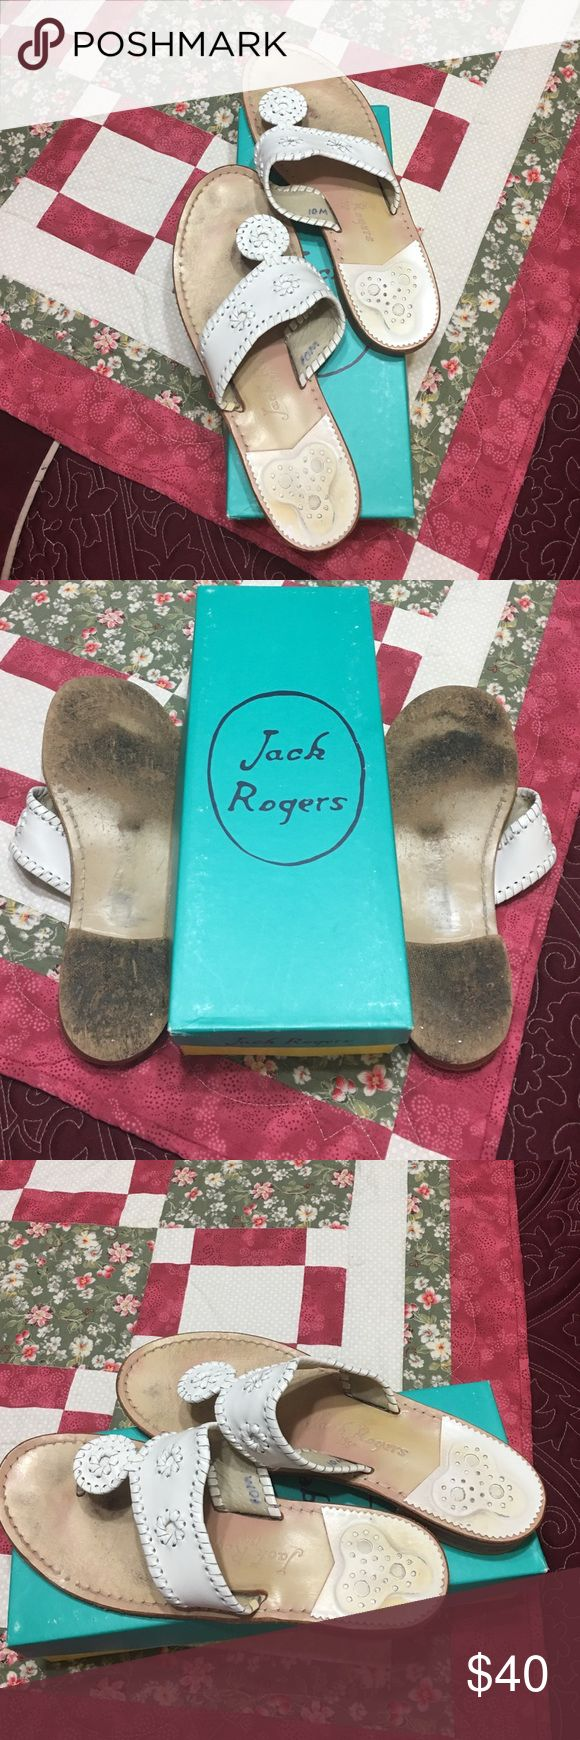 Jack Rogers Palm Beach Flat Size 10 Gently used but with lots of wear left. Leather white sandals by Jack Rogers. LMK if you'd like the box.  Thanks! Jack Rogers Shoes Sandals